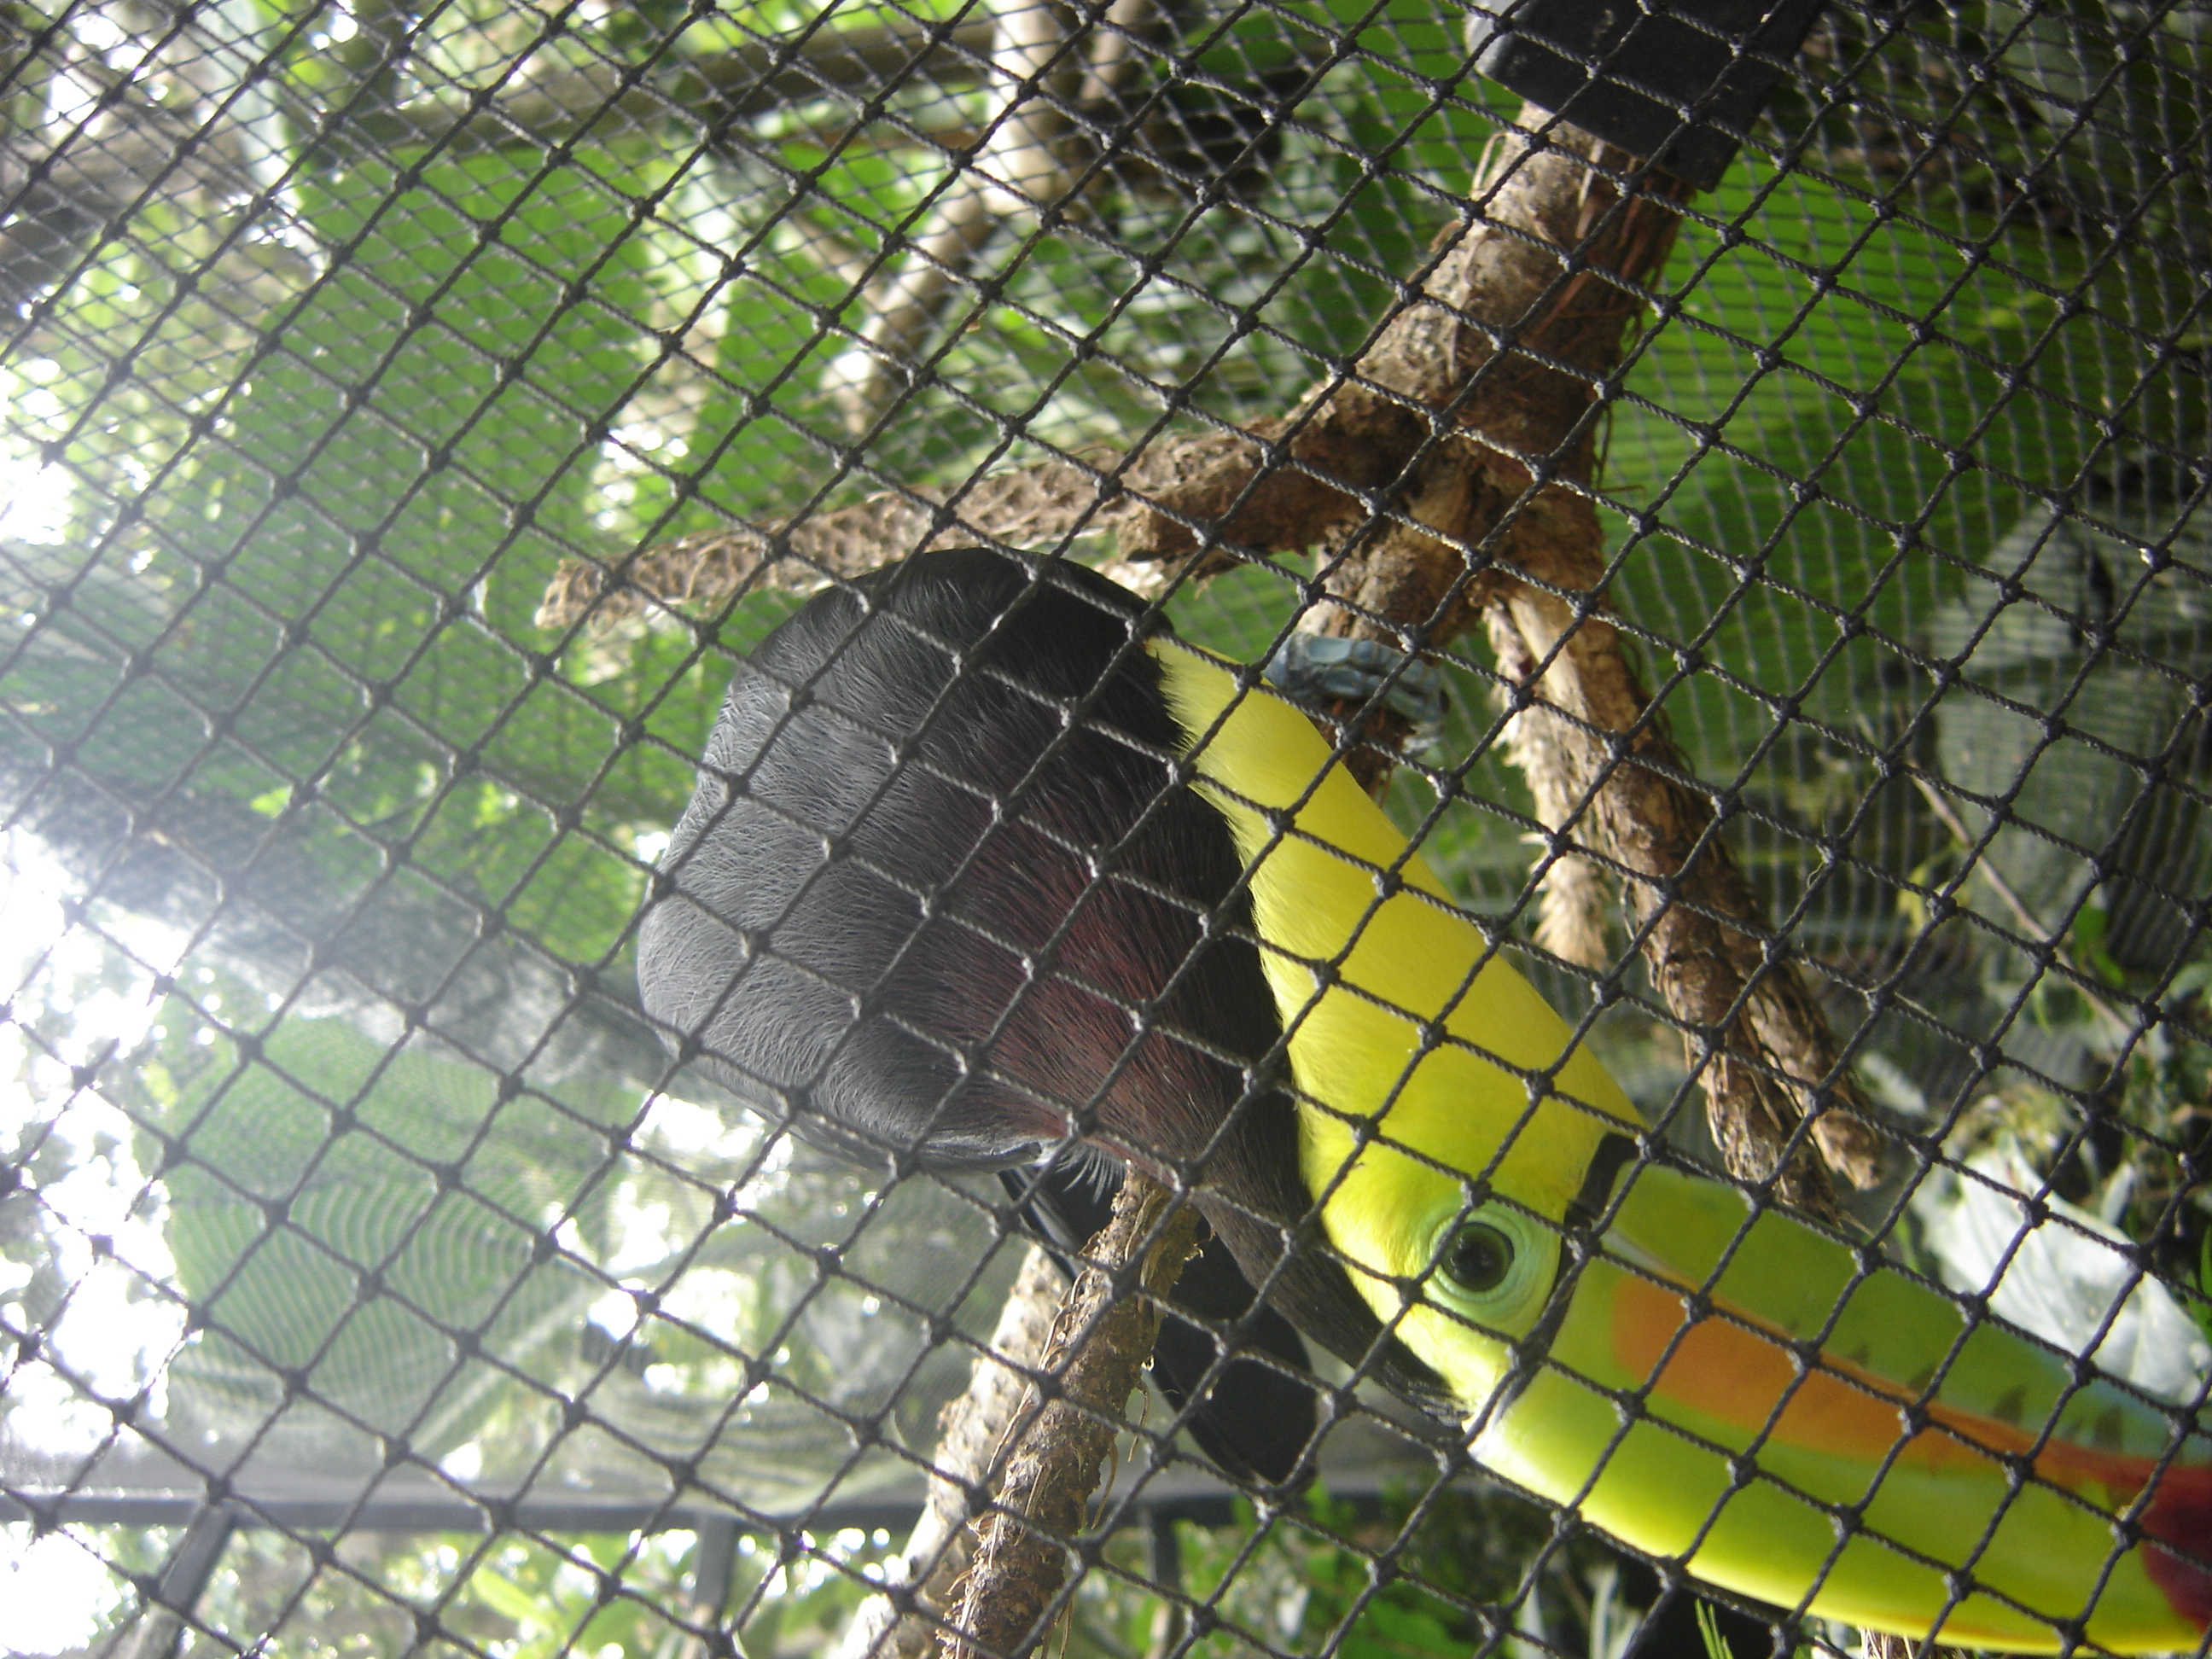 A very curious Toucan bird saying hi.